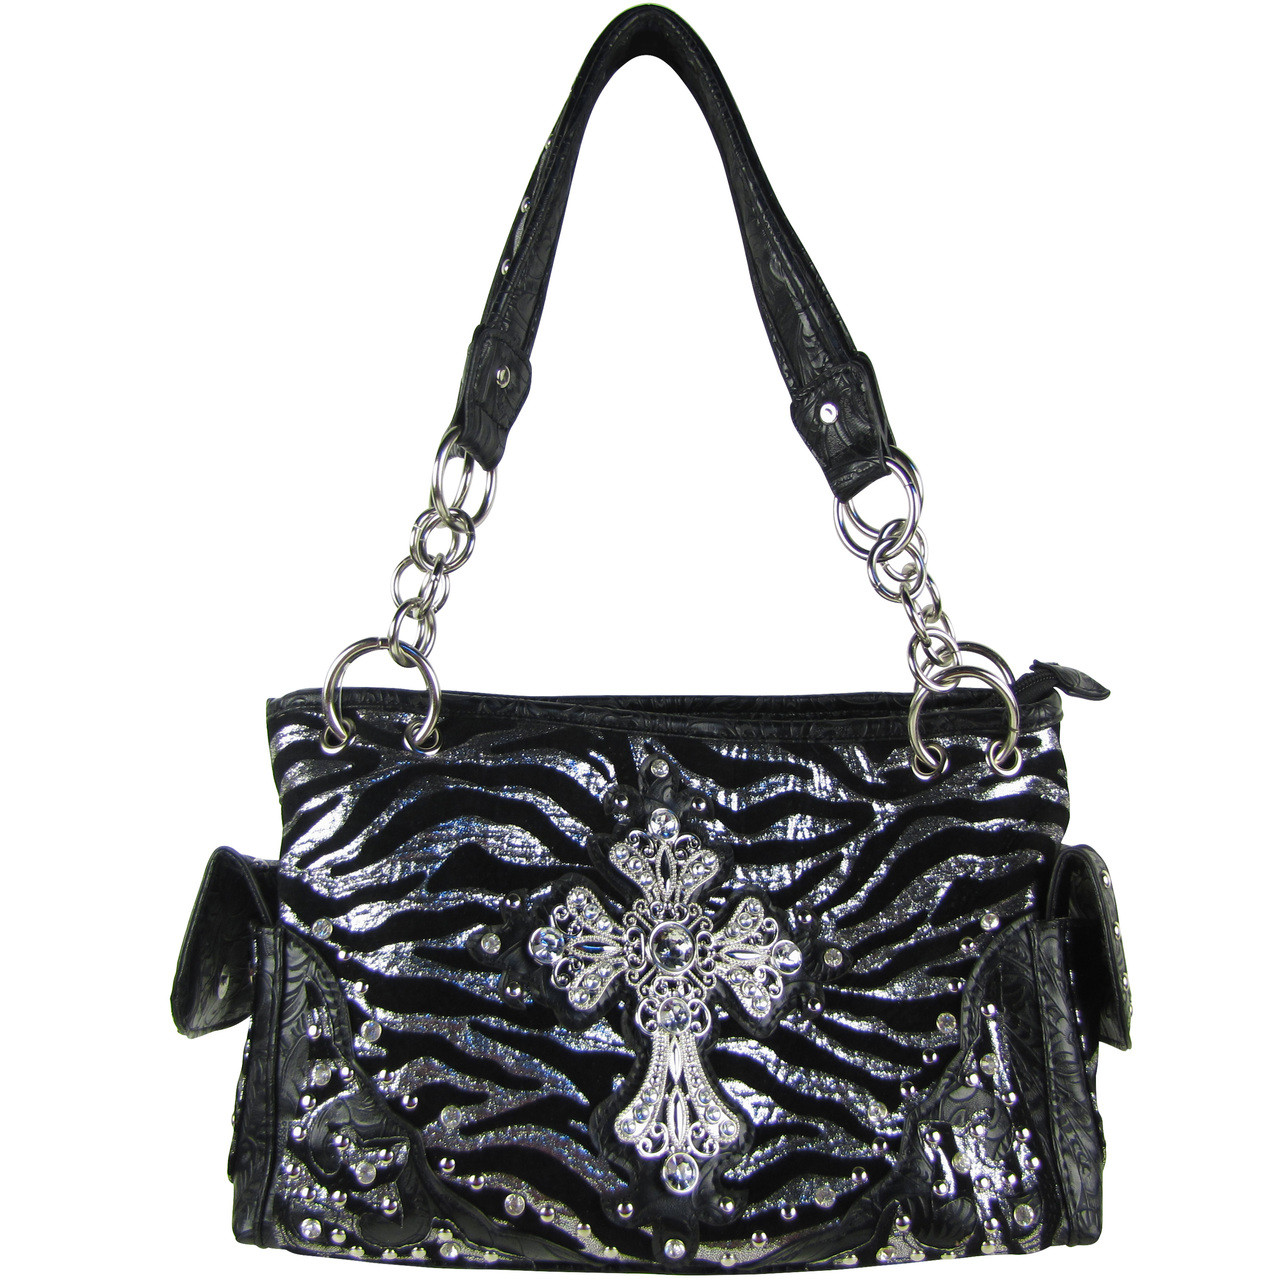 BLACK ZEBRA RHINESTONE CROSS SHOULDER HANDBAG HB1-FZLCR-3BLK